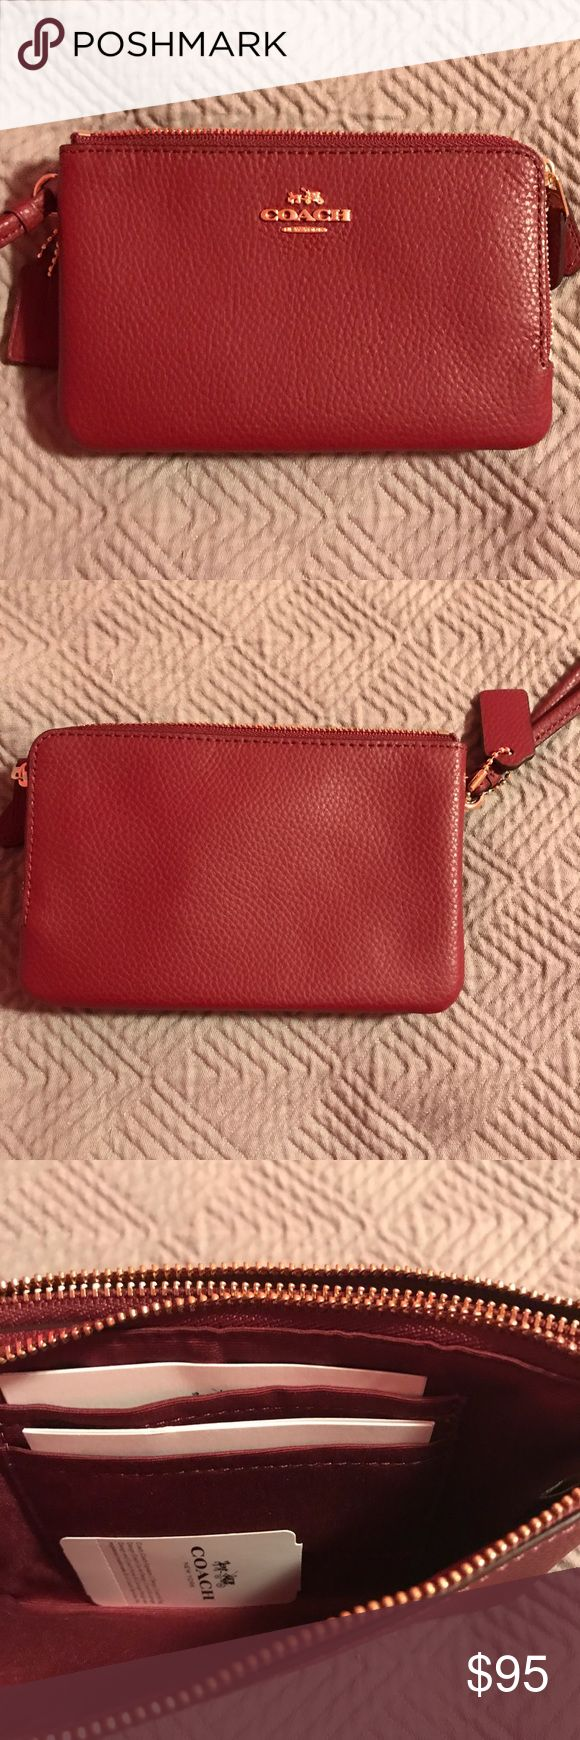 Coach Double Zip Wristlet Coach Double Zip Wristlet Wine Red with Gold Tone logo.  One compartment features two card slots and an open roomy compartment, second compartment can hold lipstick, changes and other daily essentials.  Price Firm!  Comes with Coach gift box and tissue paper. Coach Bags Clutches & Wristlets